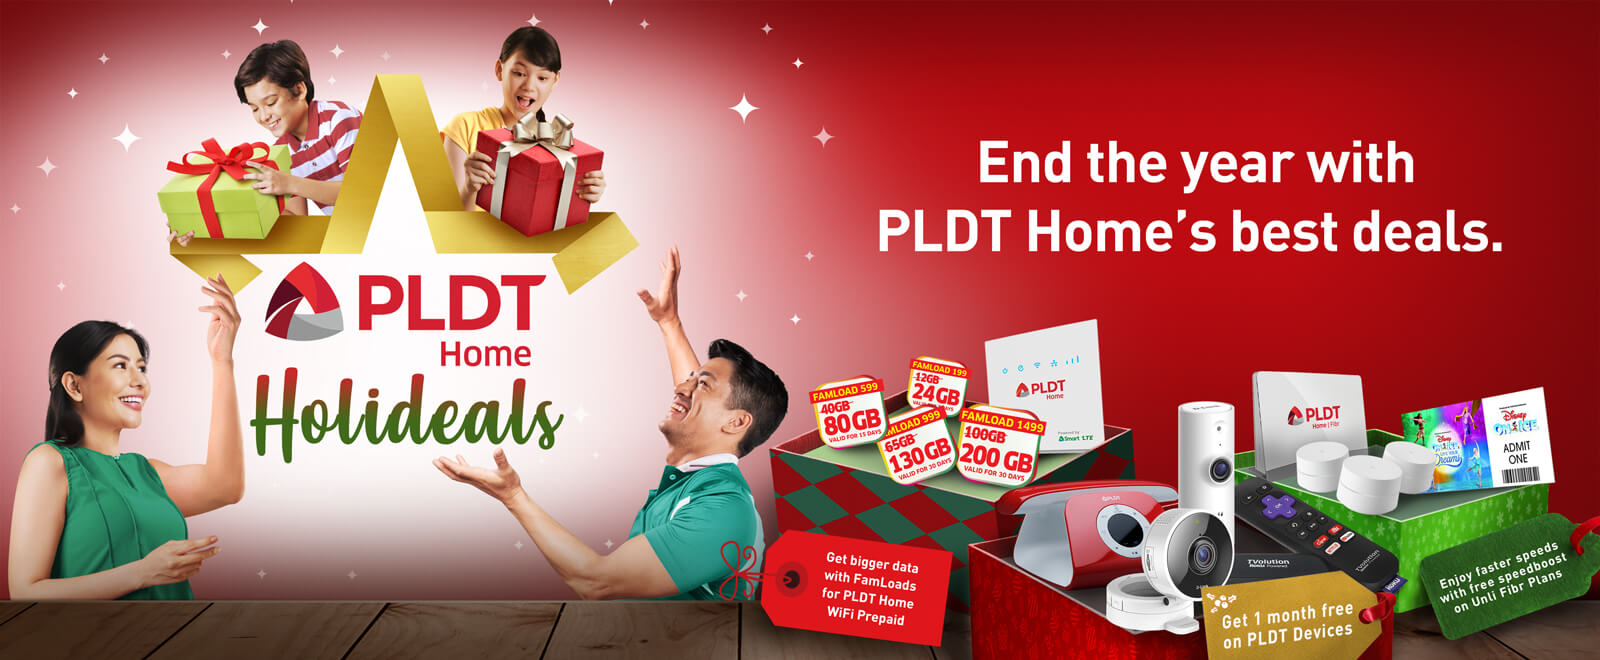 PLDT Holideals, PLDT Home Announces Holideals, its Biggest Holiday Sale!, Gadget Pilipinas, Gadget Pilipinas